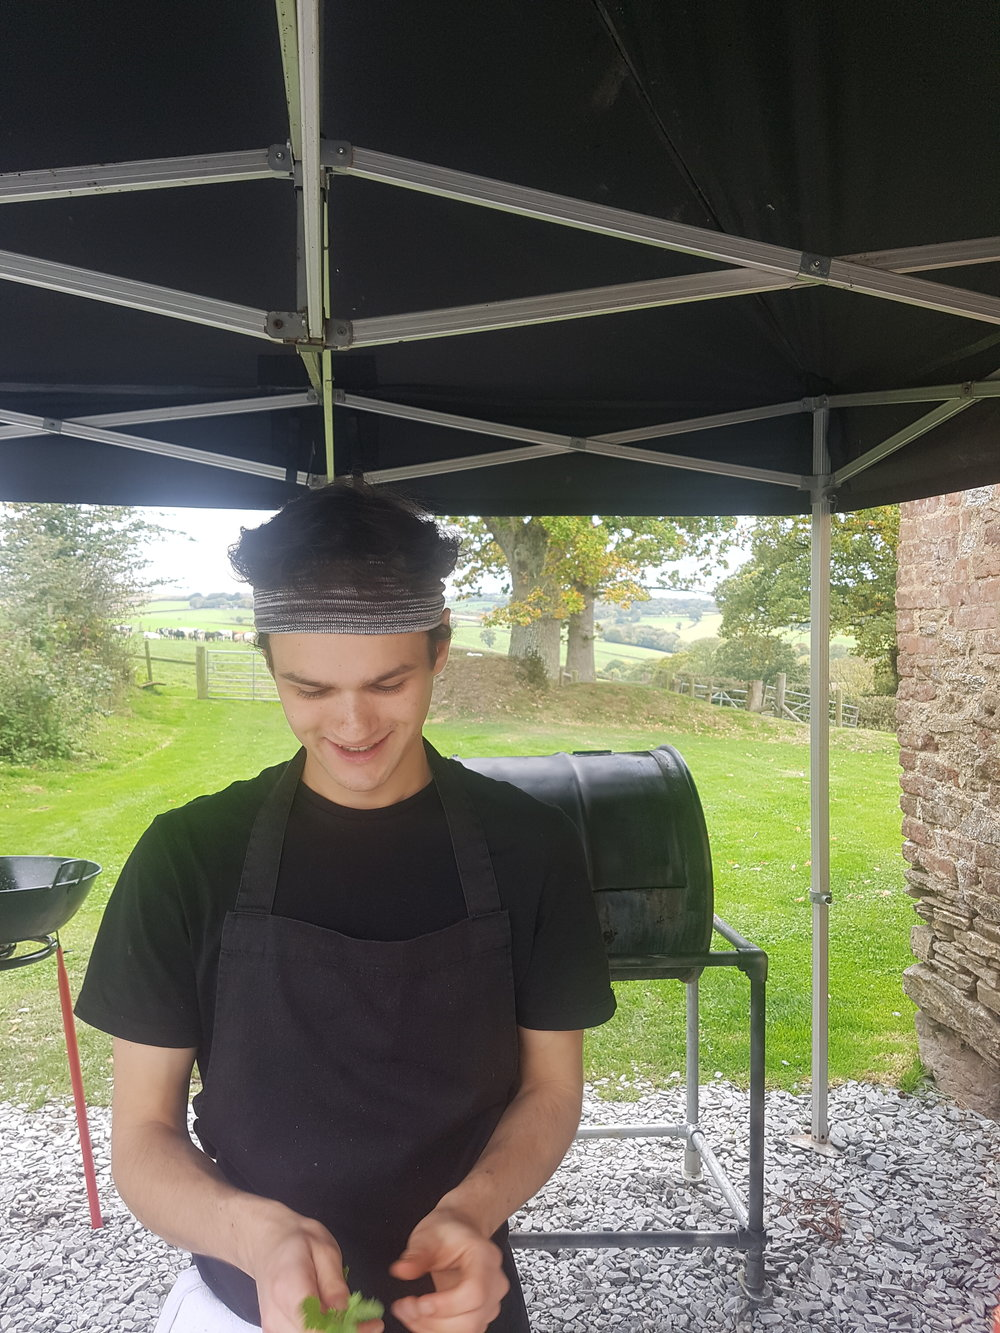 Sous Chef Jacob getting ready for some hot smoked pork loin on the bbq at Higher Eggbeer Farm.